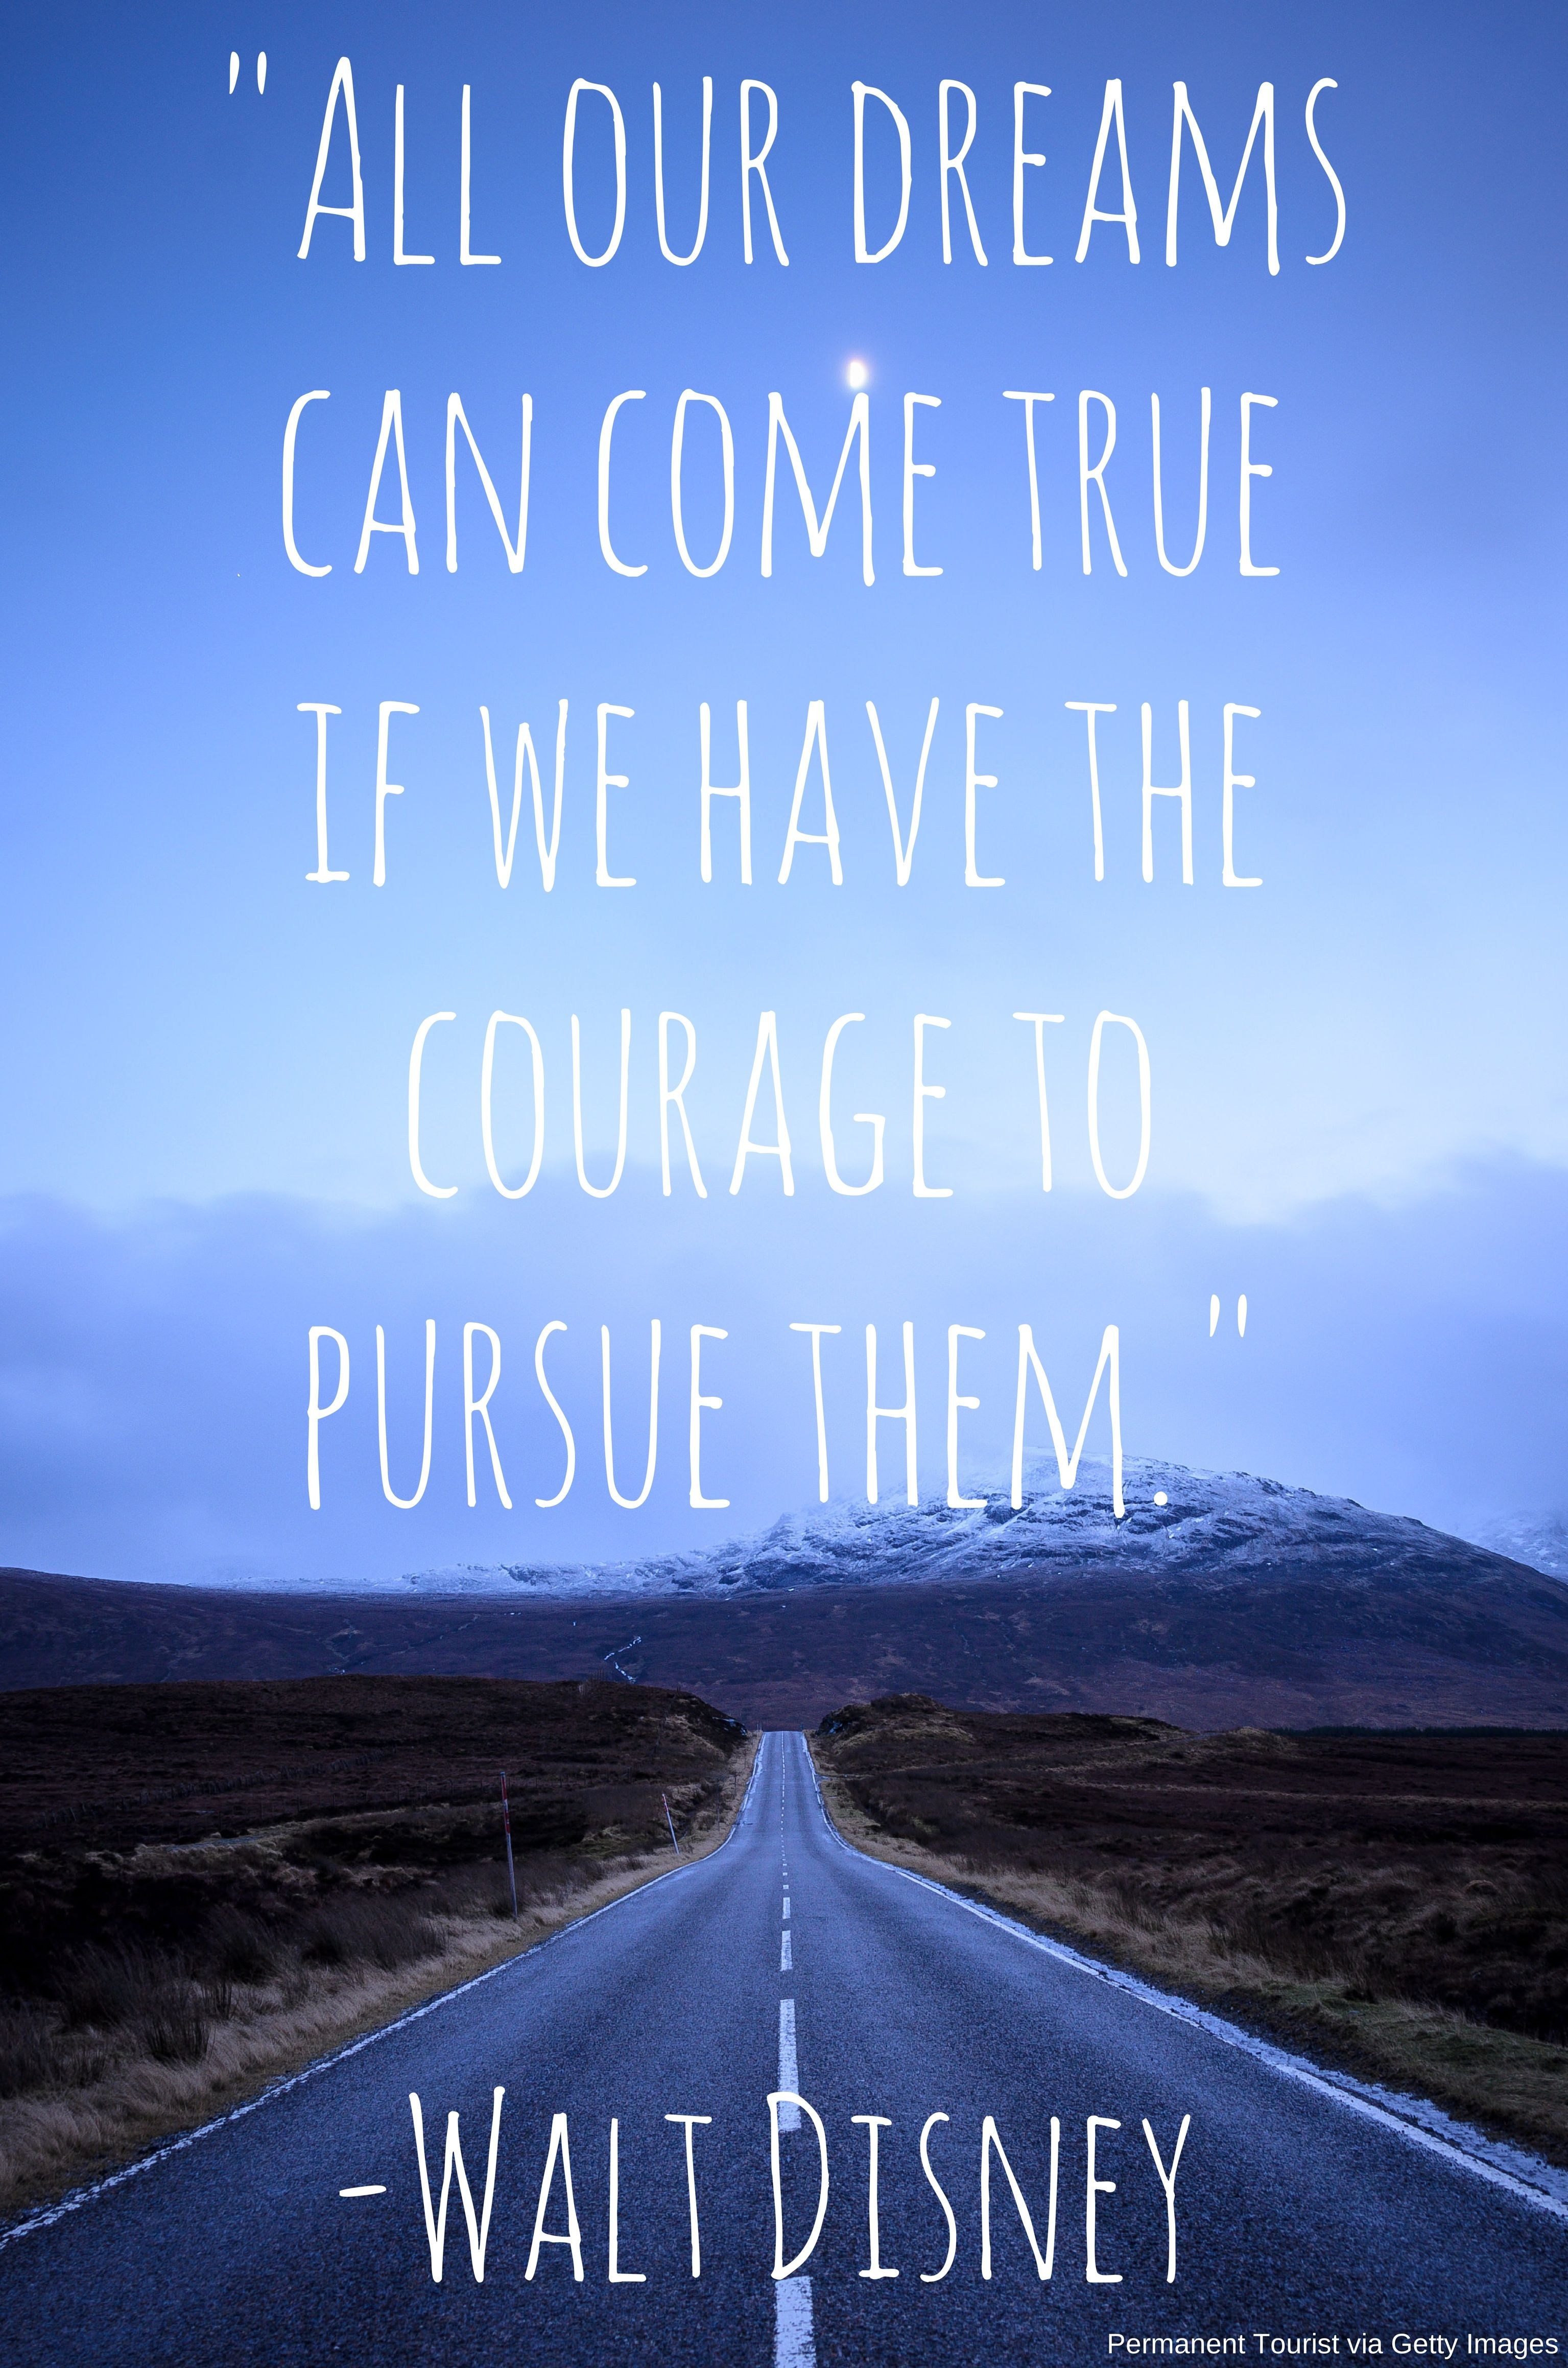 www.horoscope.com dreams can come true if you have the courage... and 99 other motivational quotes